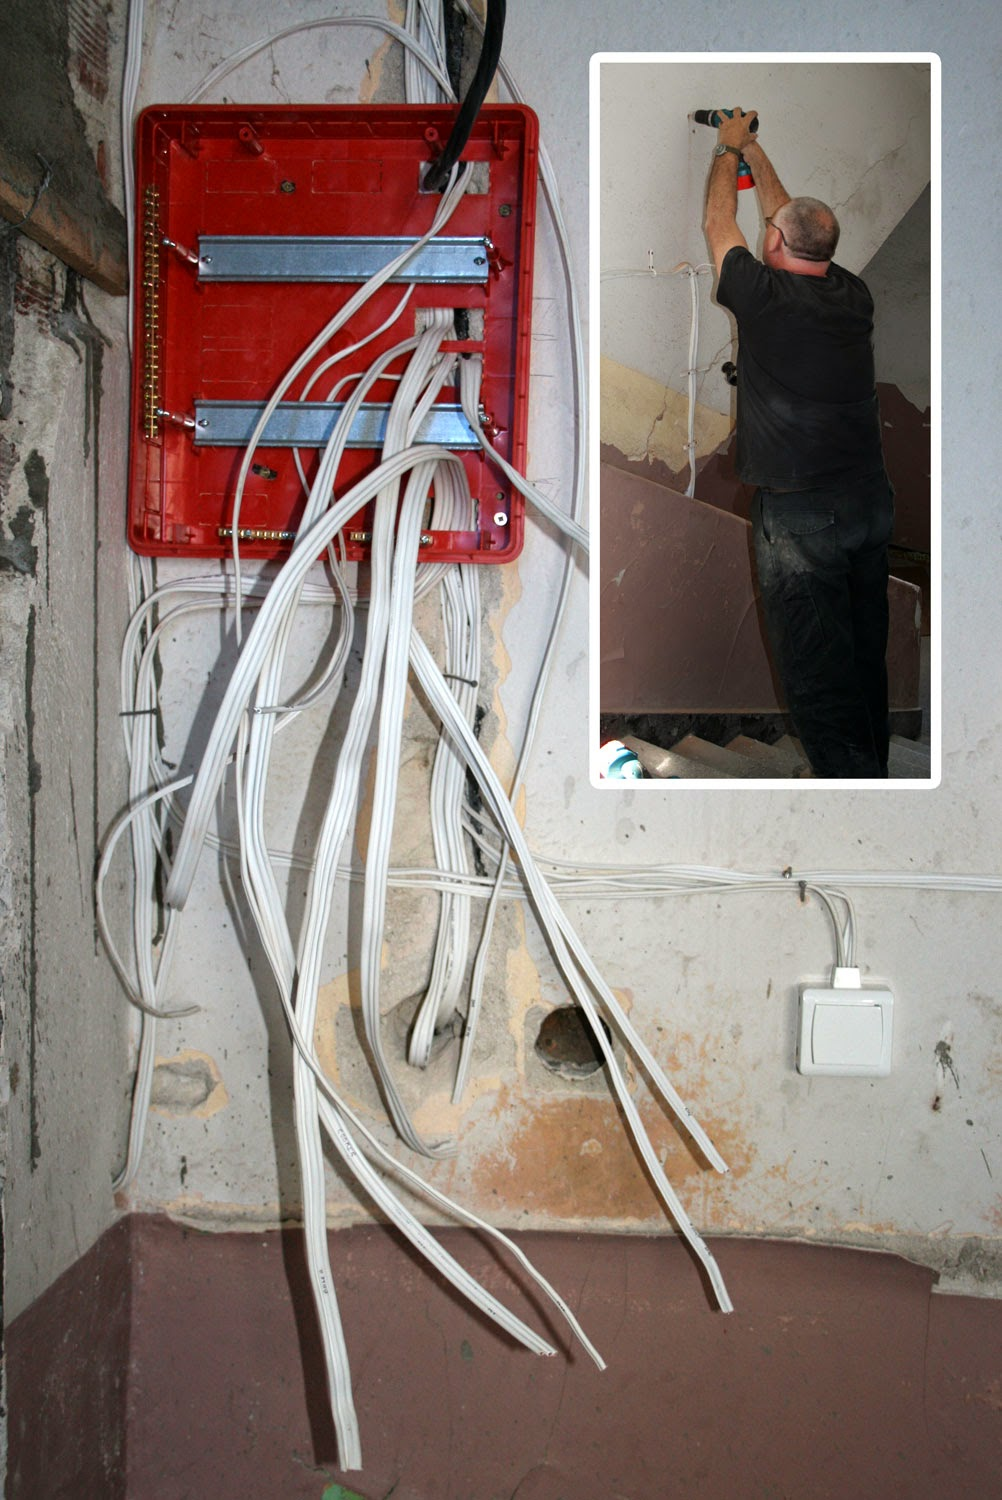 Consumer unit, and drilling